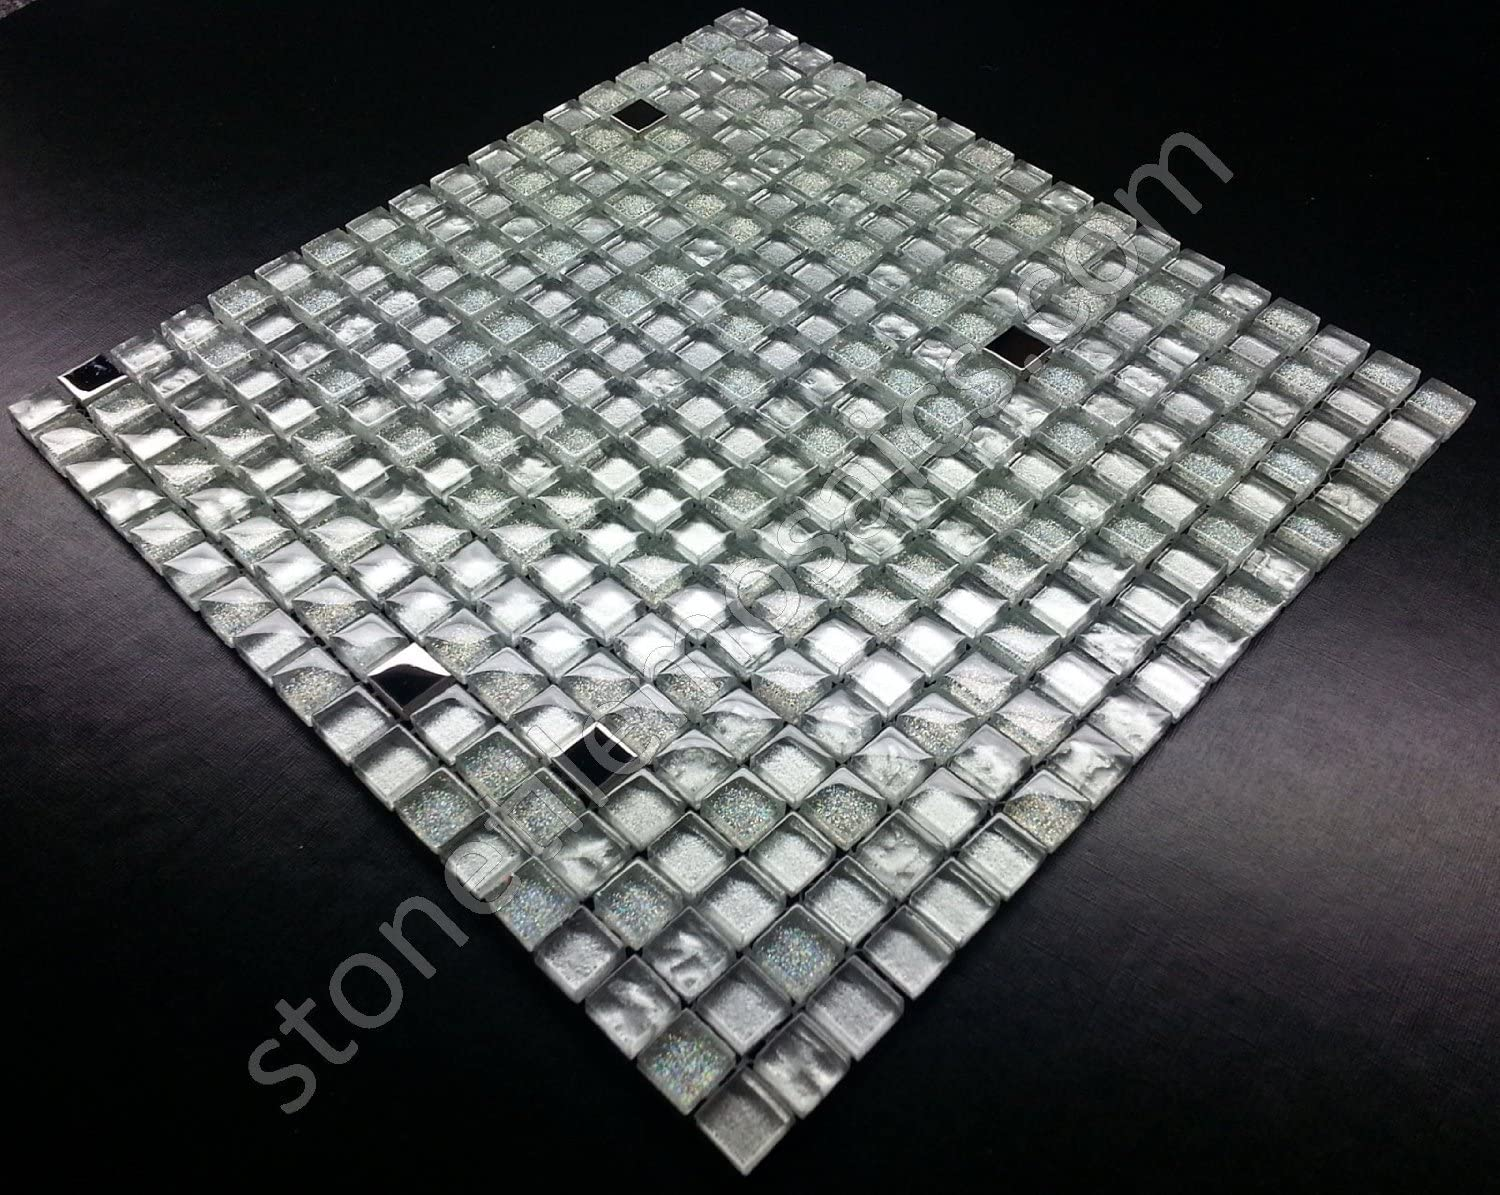 Vogue Premium Quality Silver Glass Stainless Steel Square Mosaic Tile For Backsplash And Bathroom Wall Designed In Italy 12x12